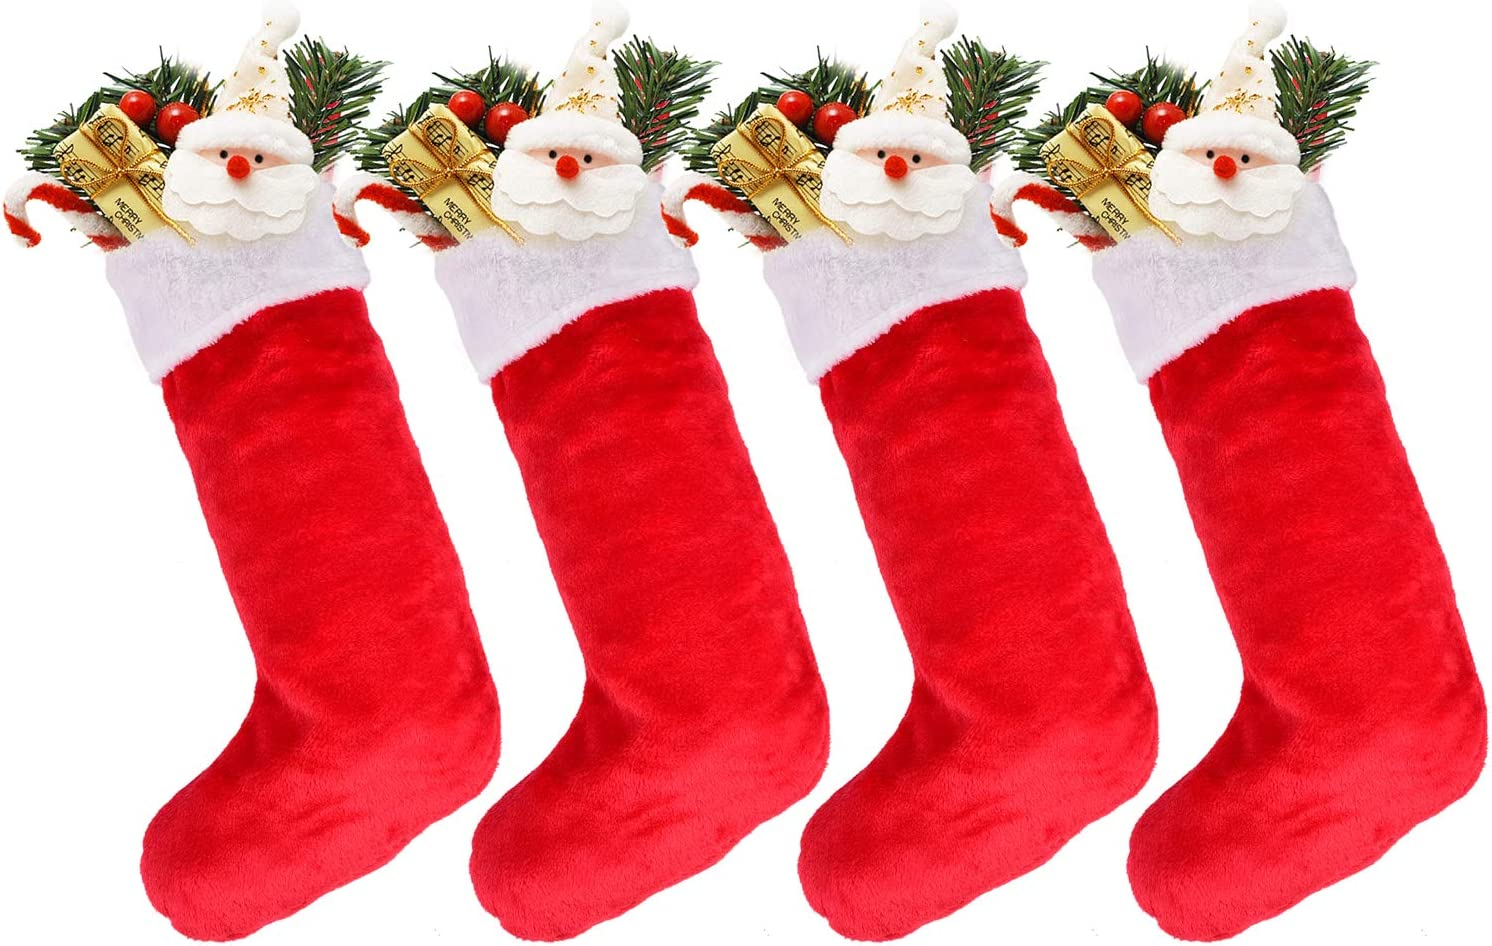 DearHouse 4 Pack Christmas Stockings, 21 inches Polyester Classic Red and White Plush Mercerized Velvet Stockings, for Home Holiday Xmas Party Fireplace Decorations